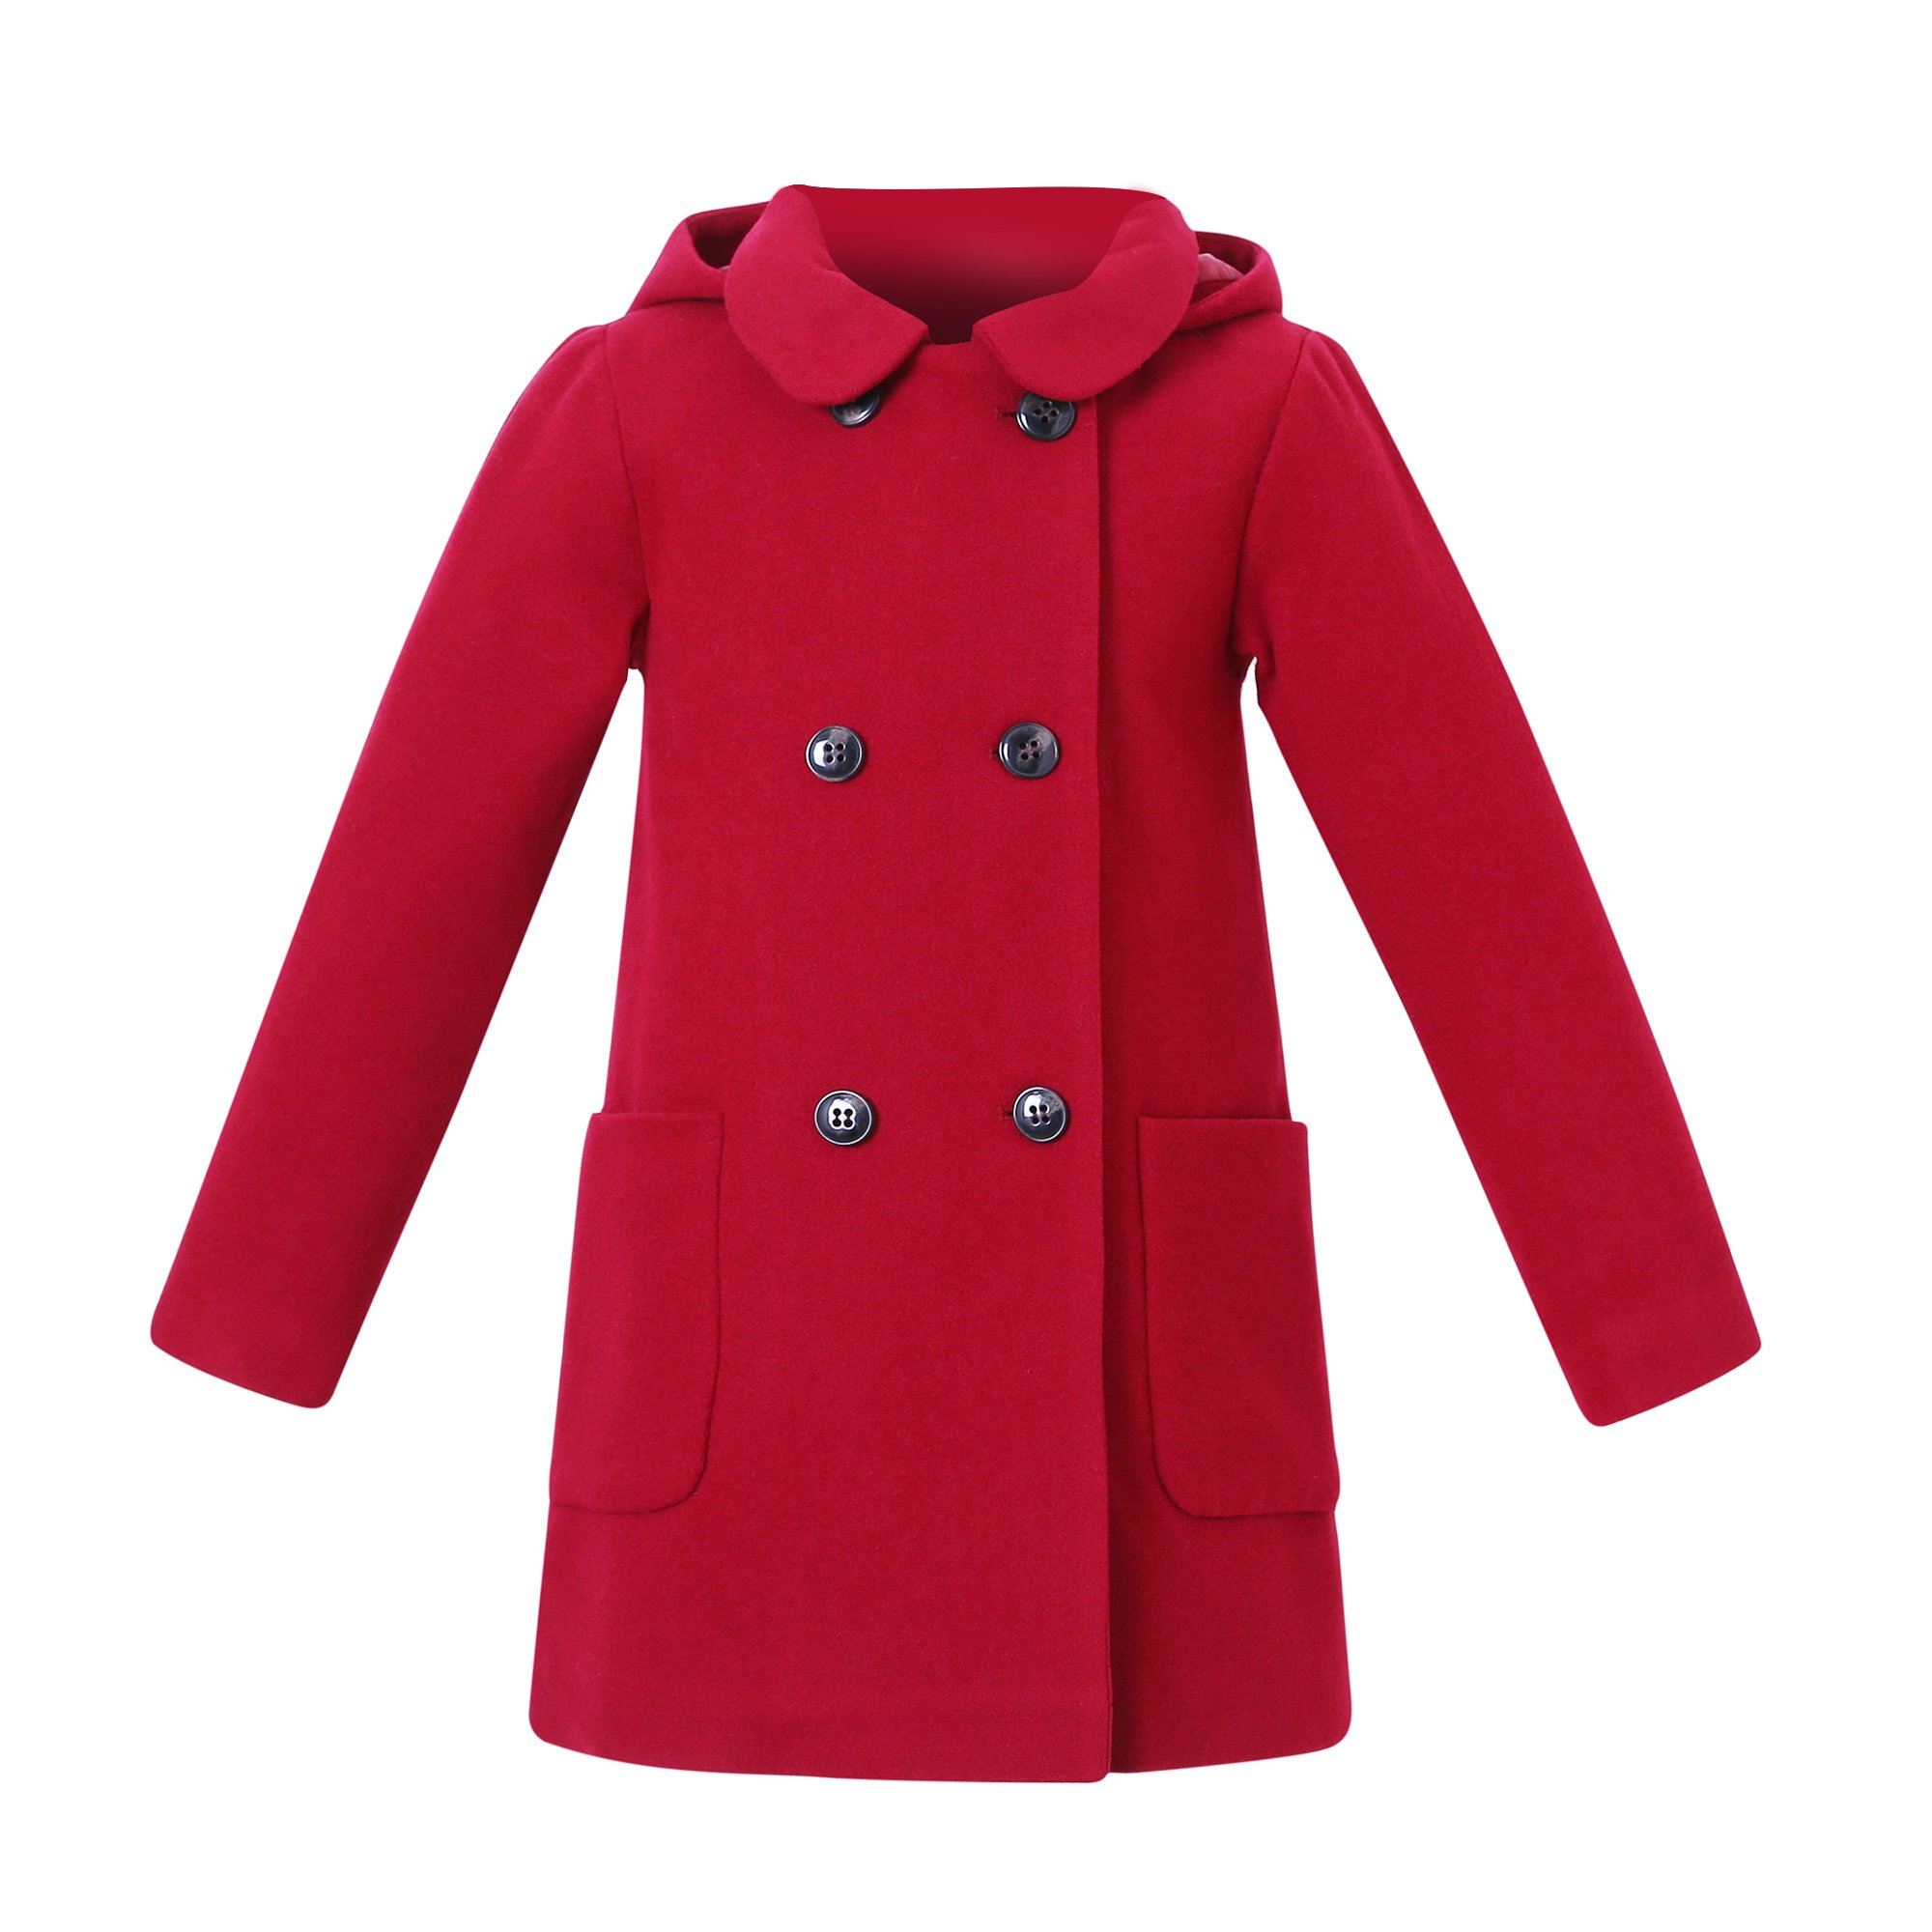 Richie House Big Girls' Wool Double-Breasted Jacket RH2517-A-9 Cherry by Richie House